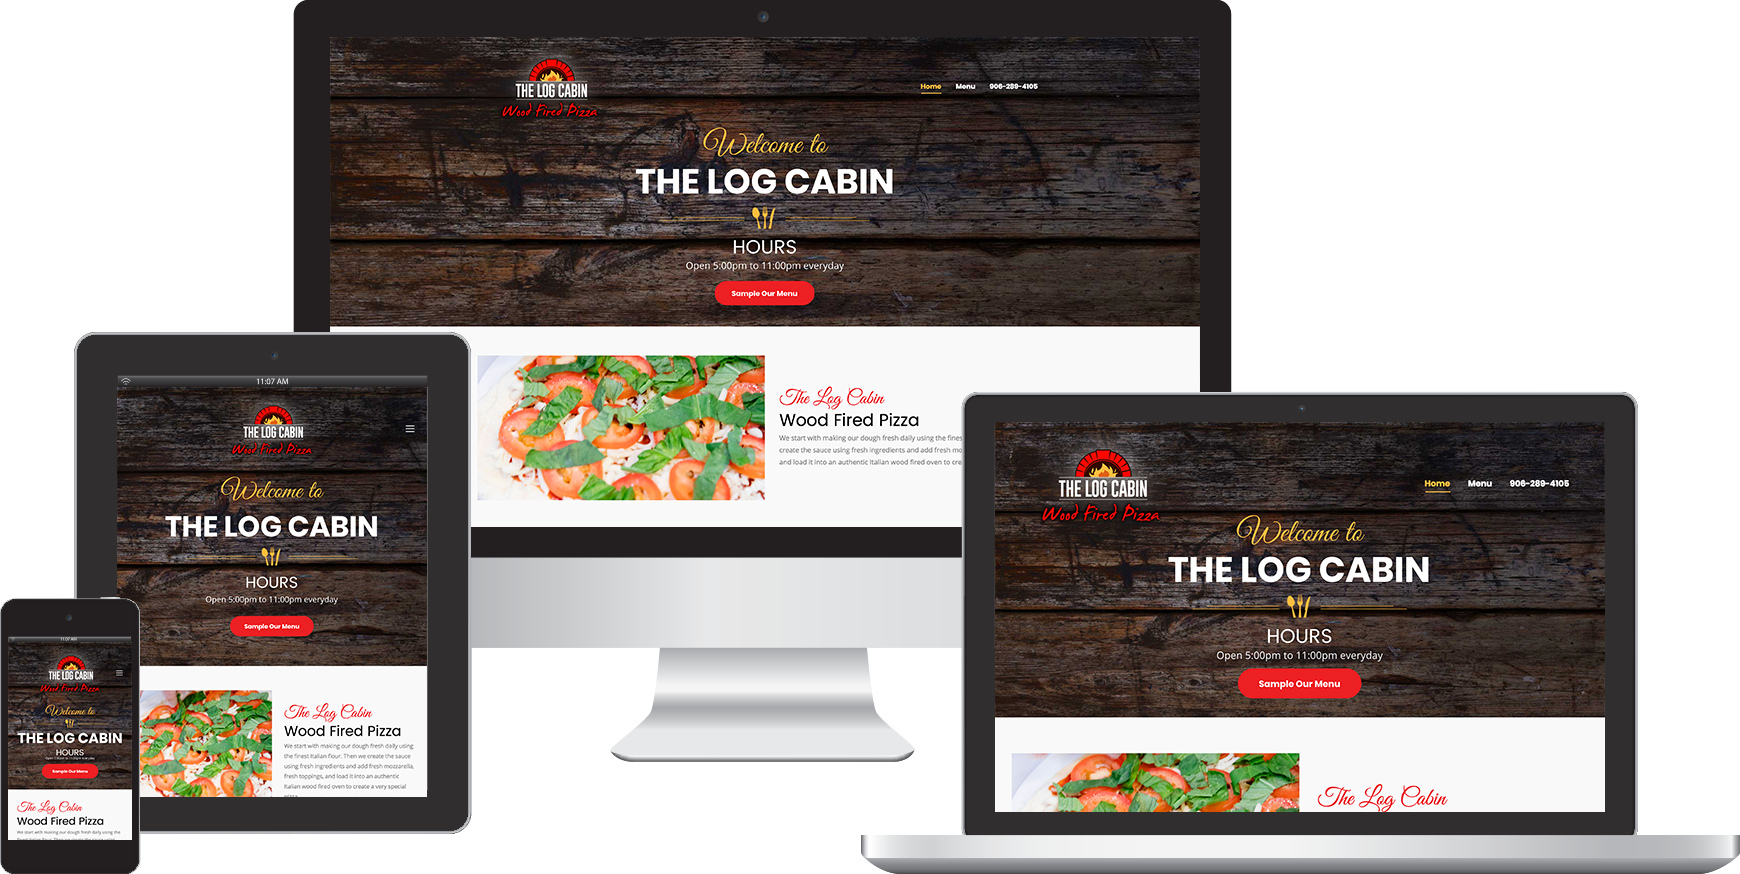 the log cabin website